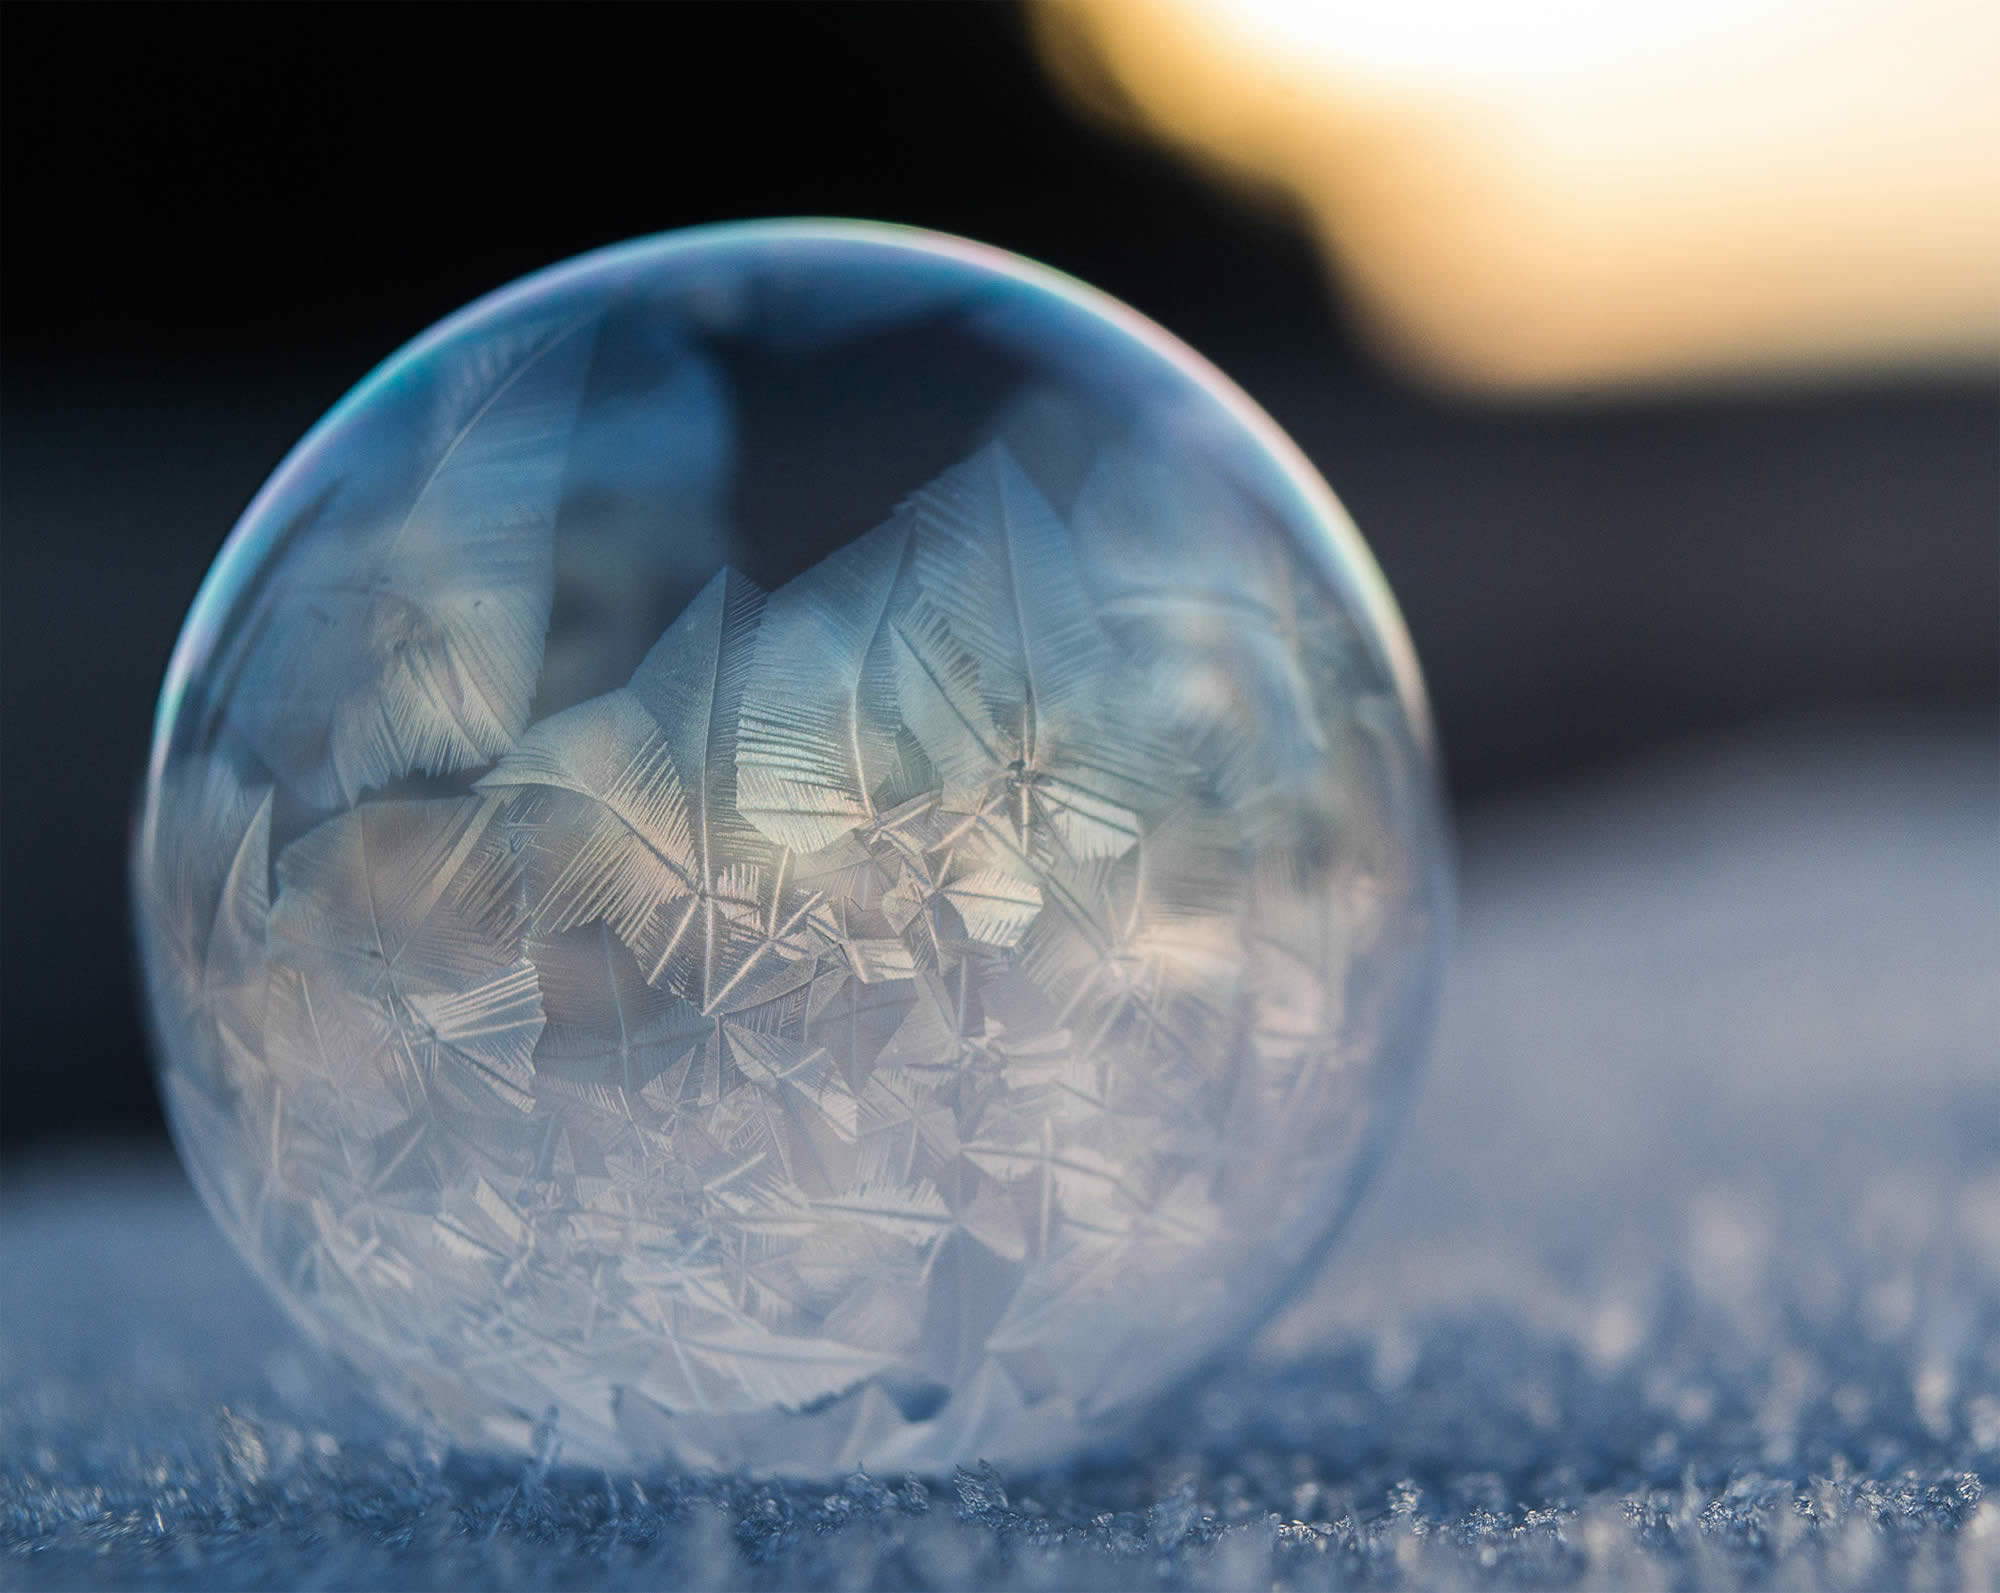 The Art of Freezing Soap Bubbles